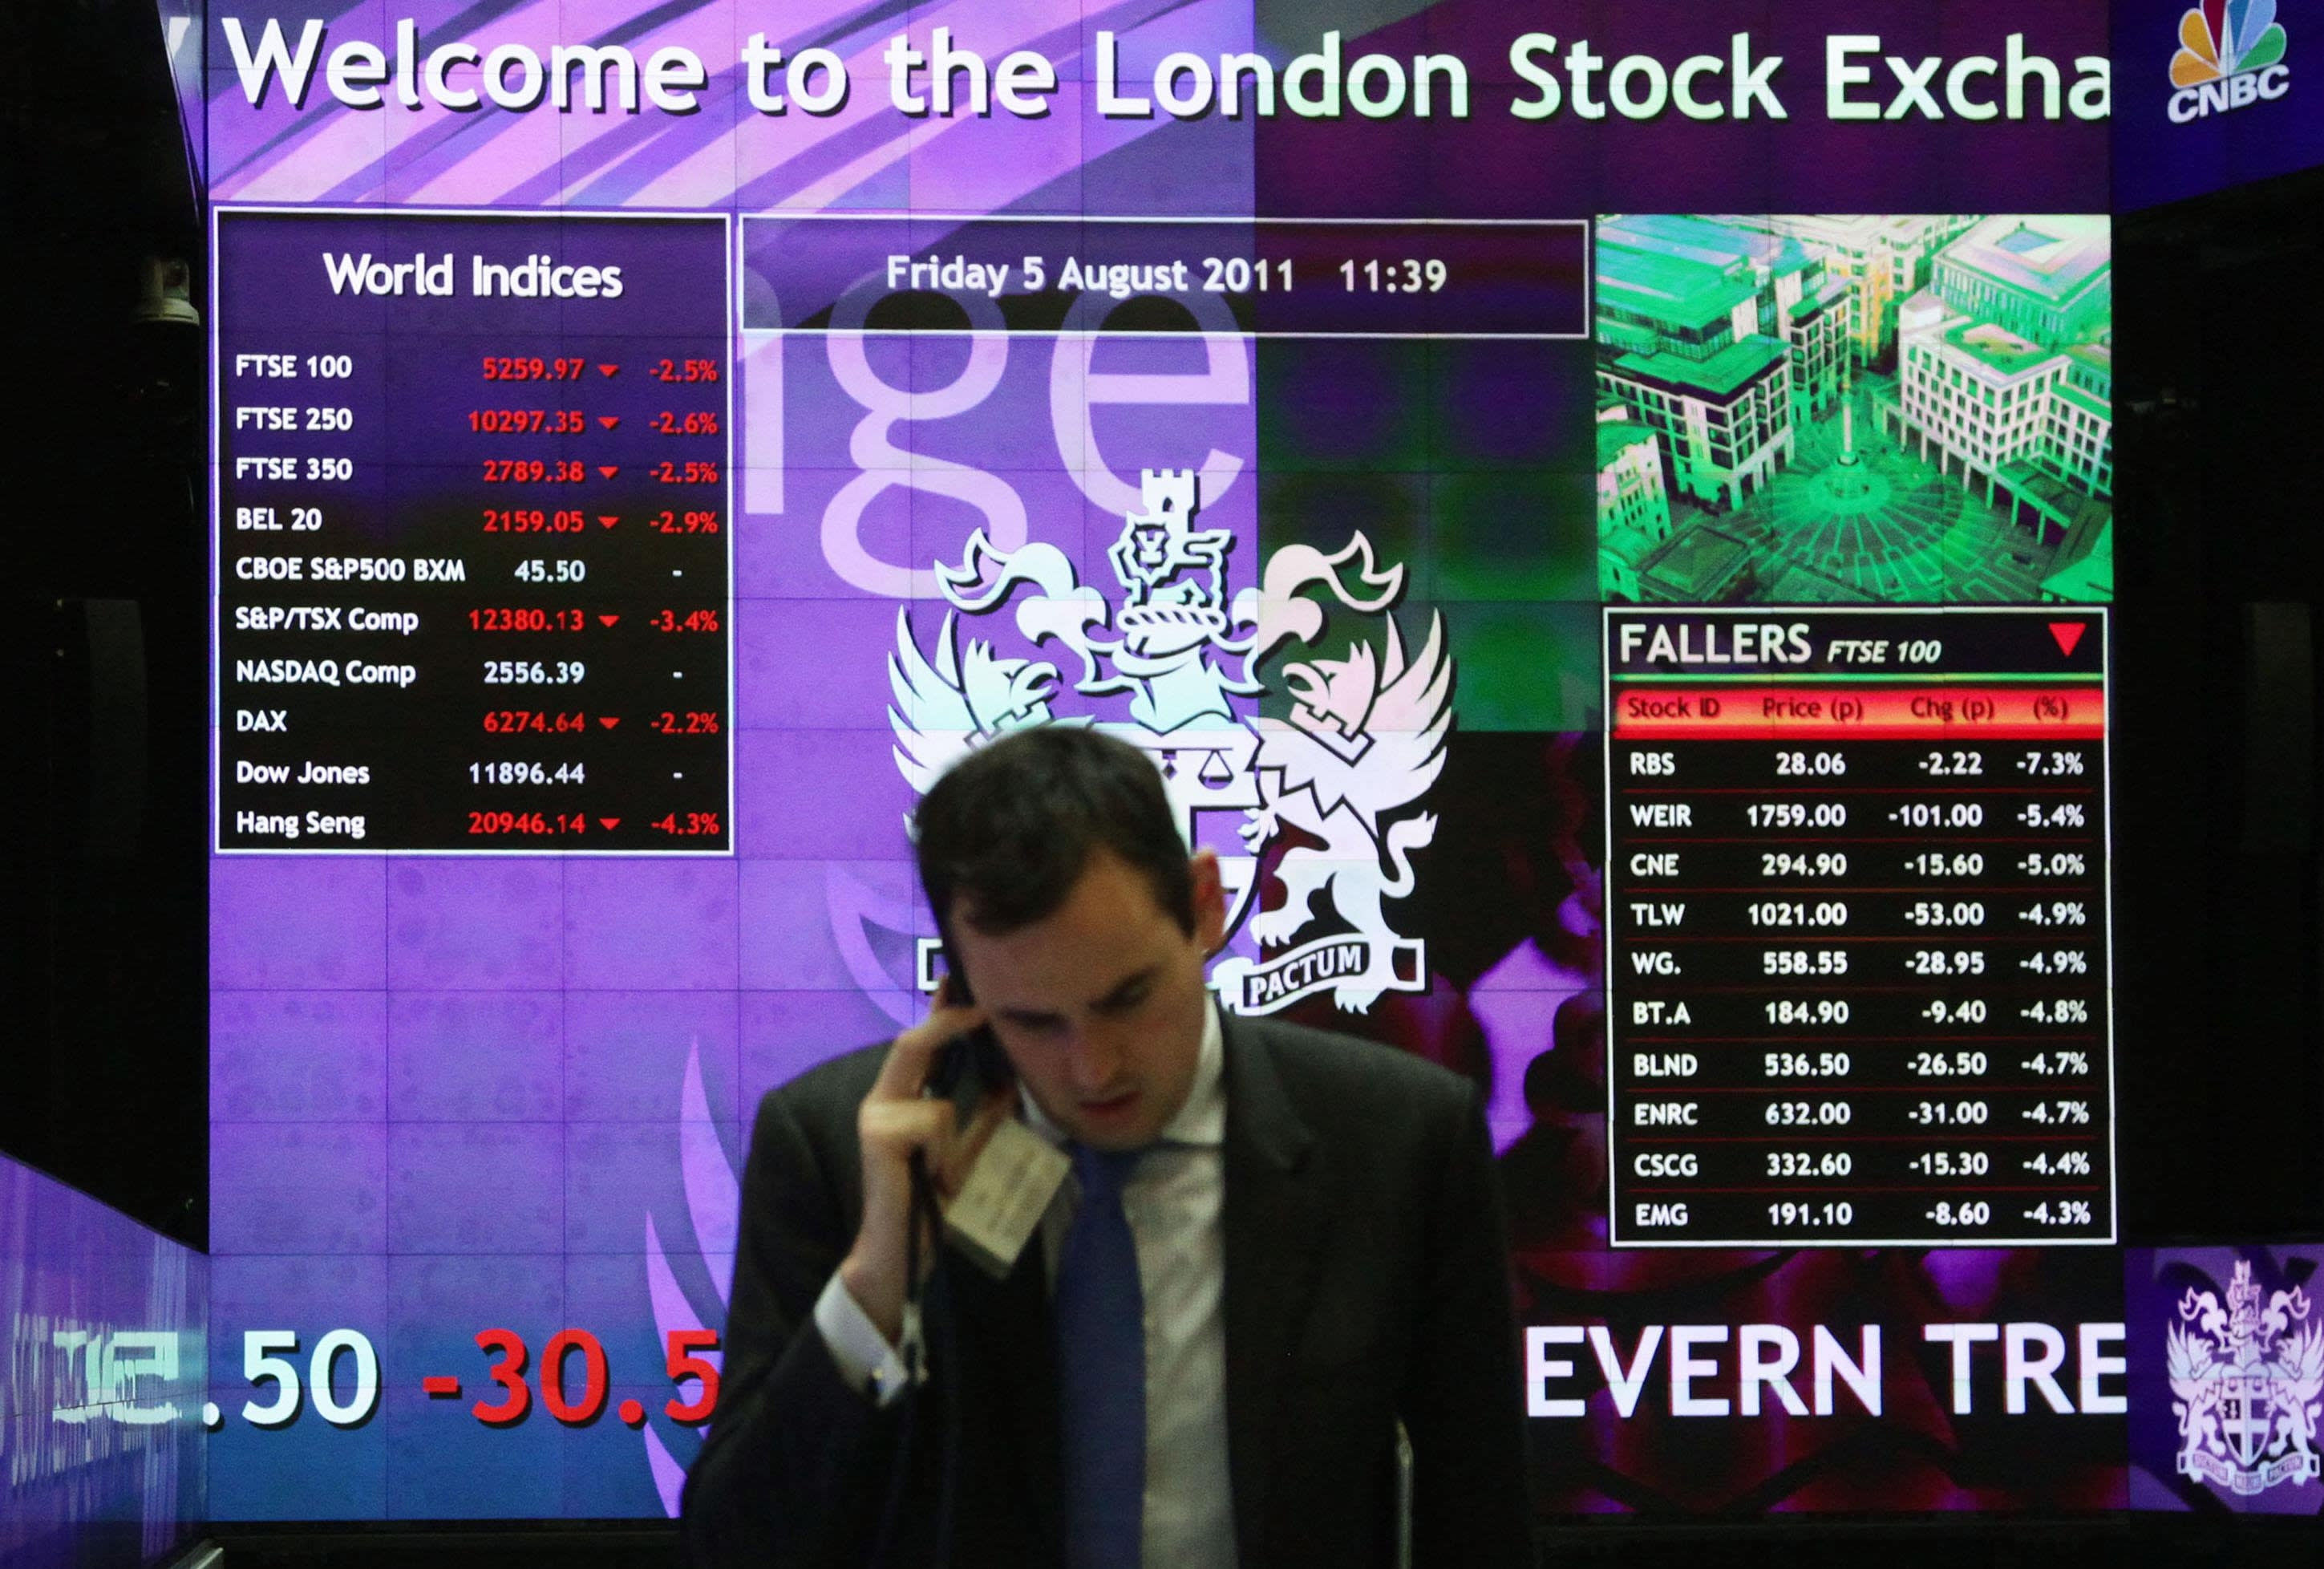 Premier's Evan-Cook shuns US shares in favour of UK